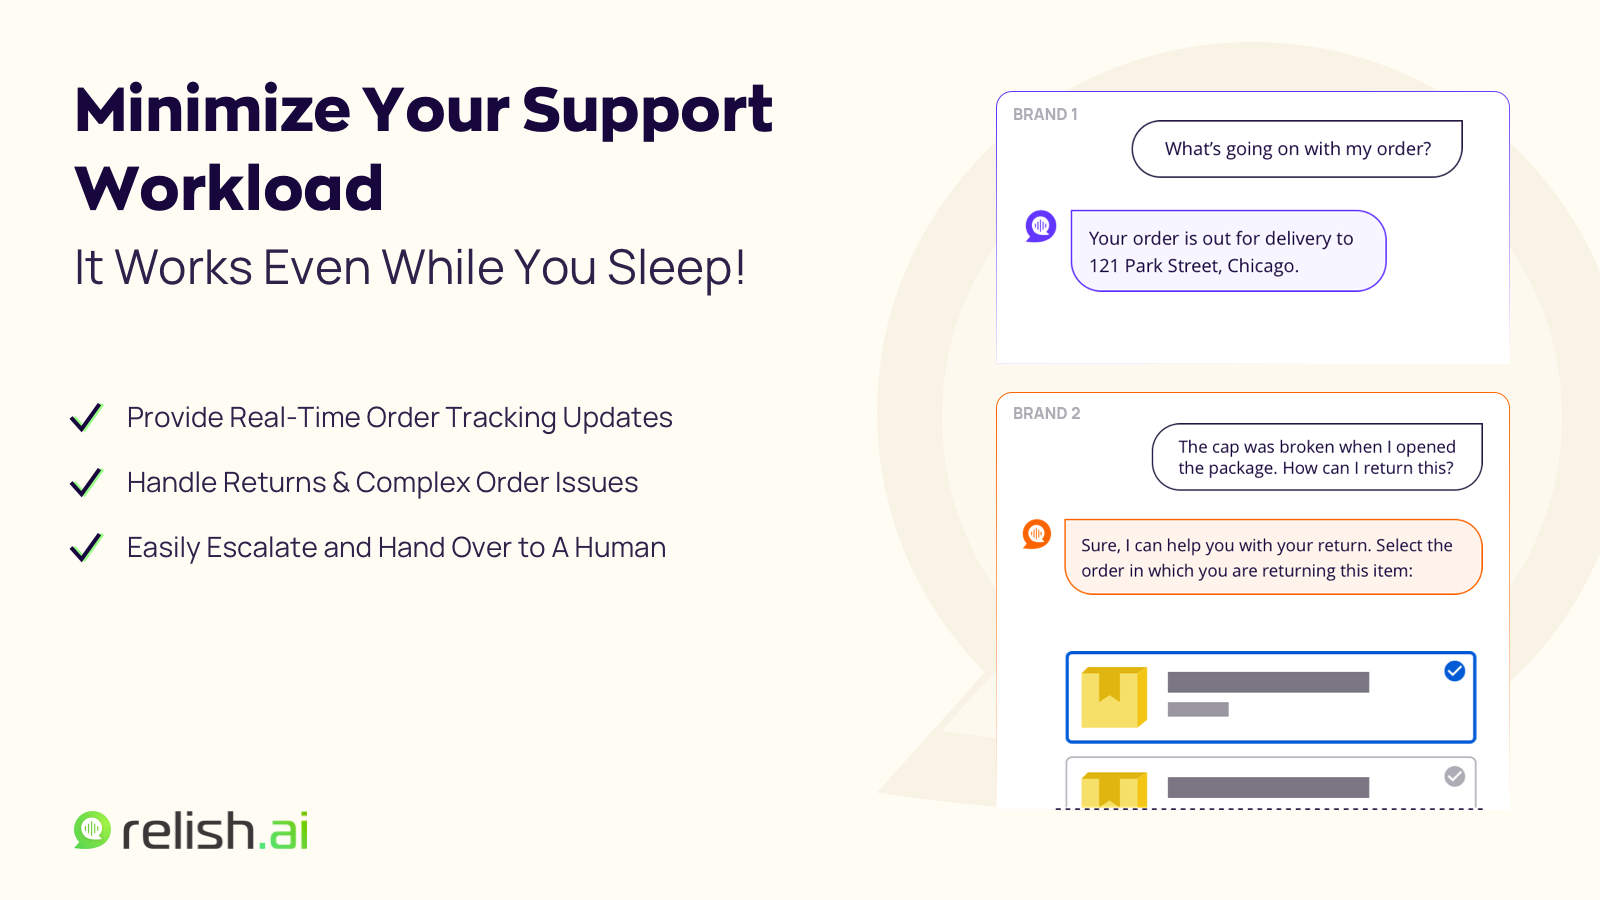 Automate Your Customer Support With Relish AI